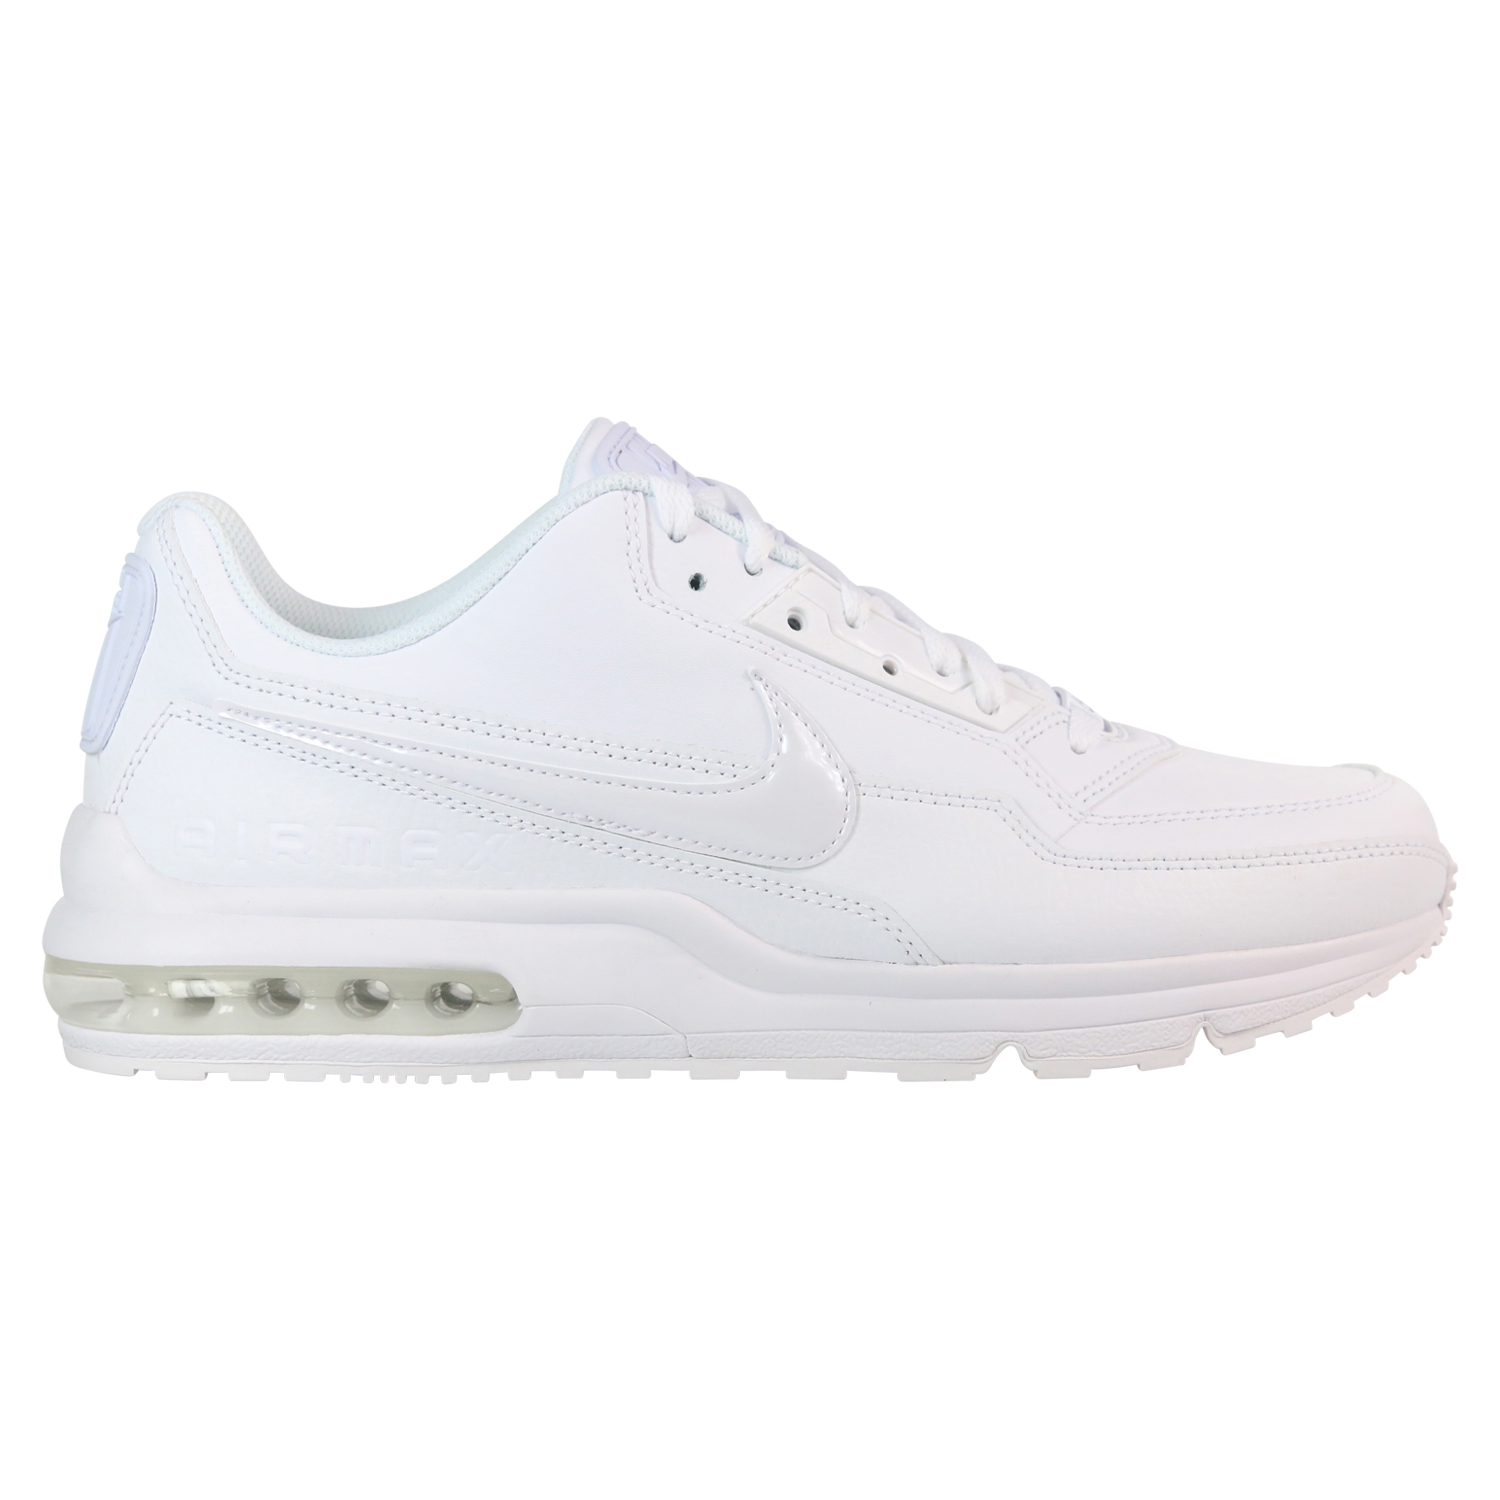 Details about Nike Air Max LTD 3 Shoes Sneakers Mens 687977 111 White show original title